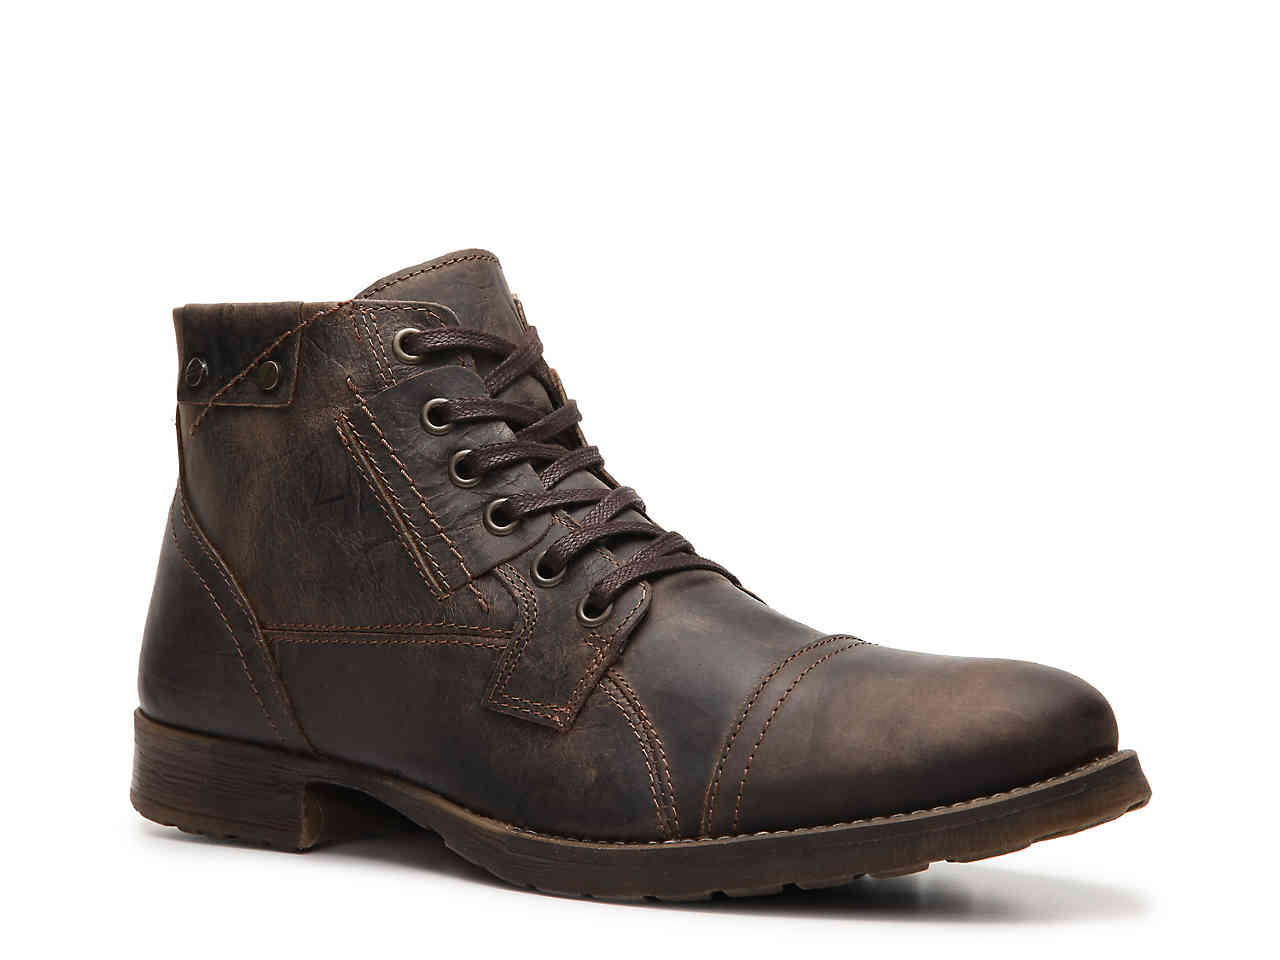 Bullboxer Shoes – Men's shoes for every occasion